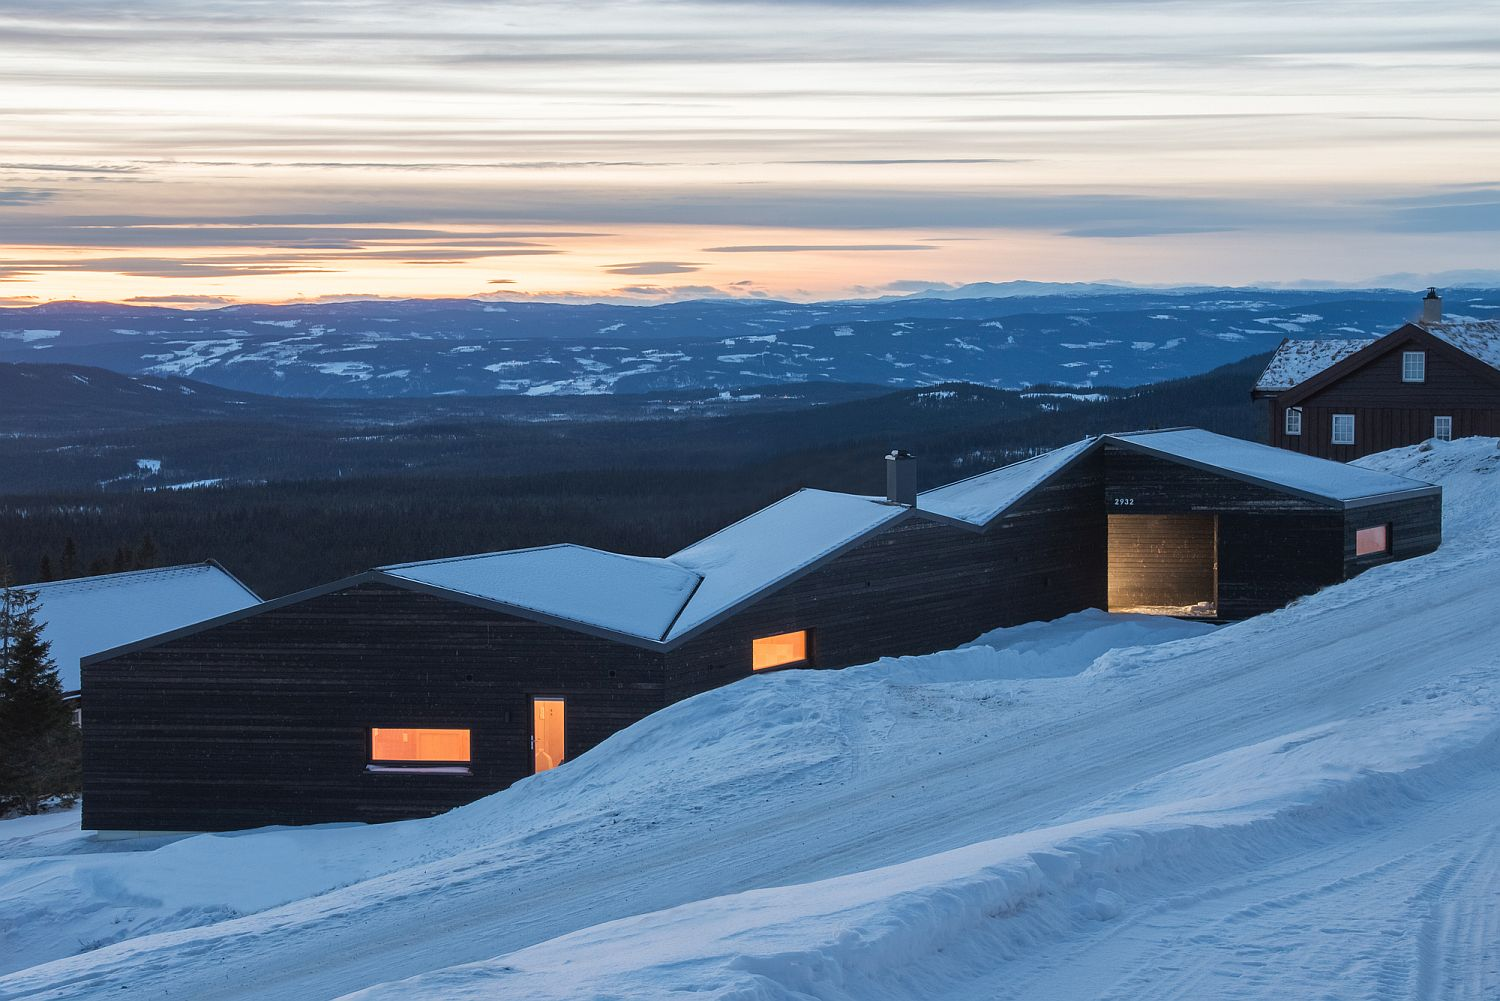 View In Gallery Modern Minimalism Meets Scandinavian Simplicity At The Cabin